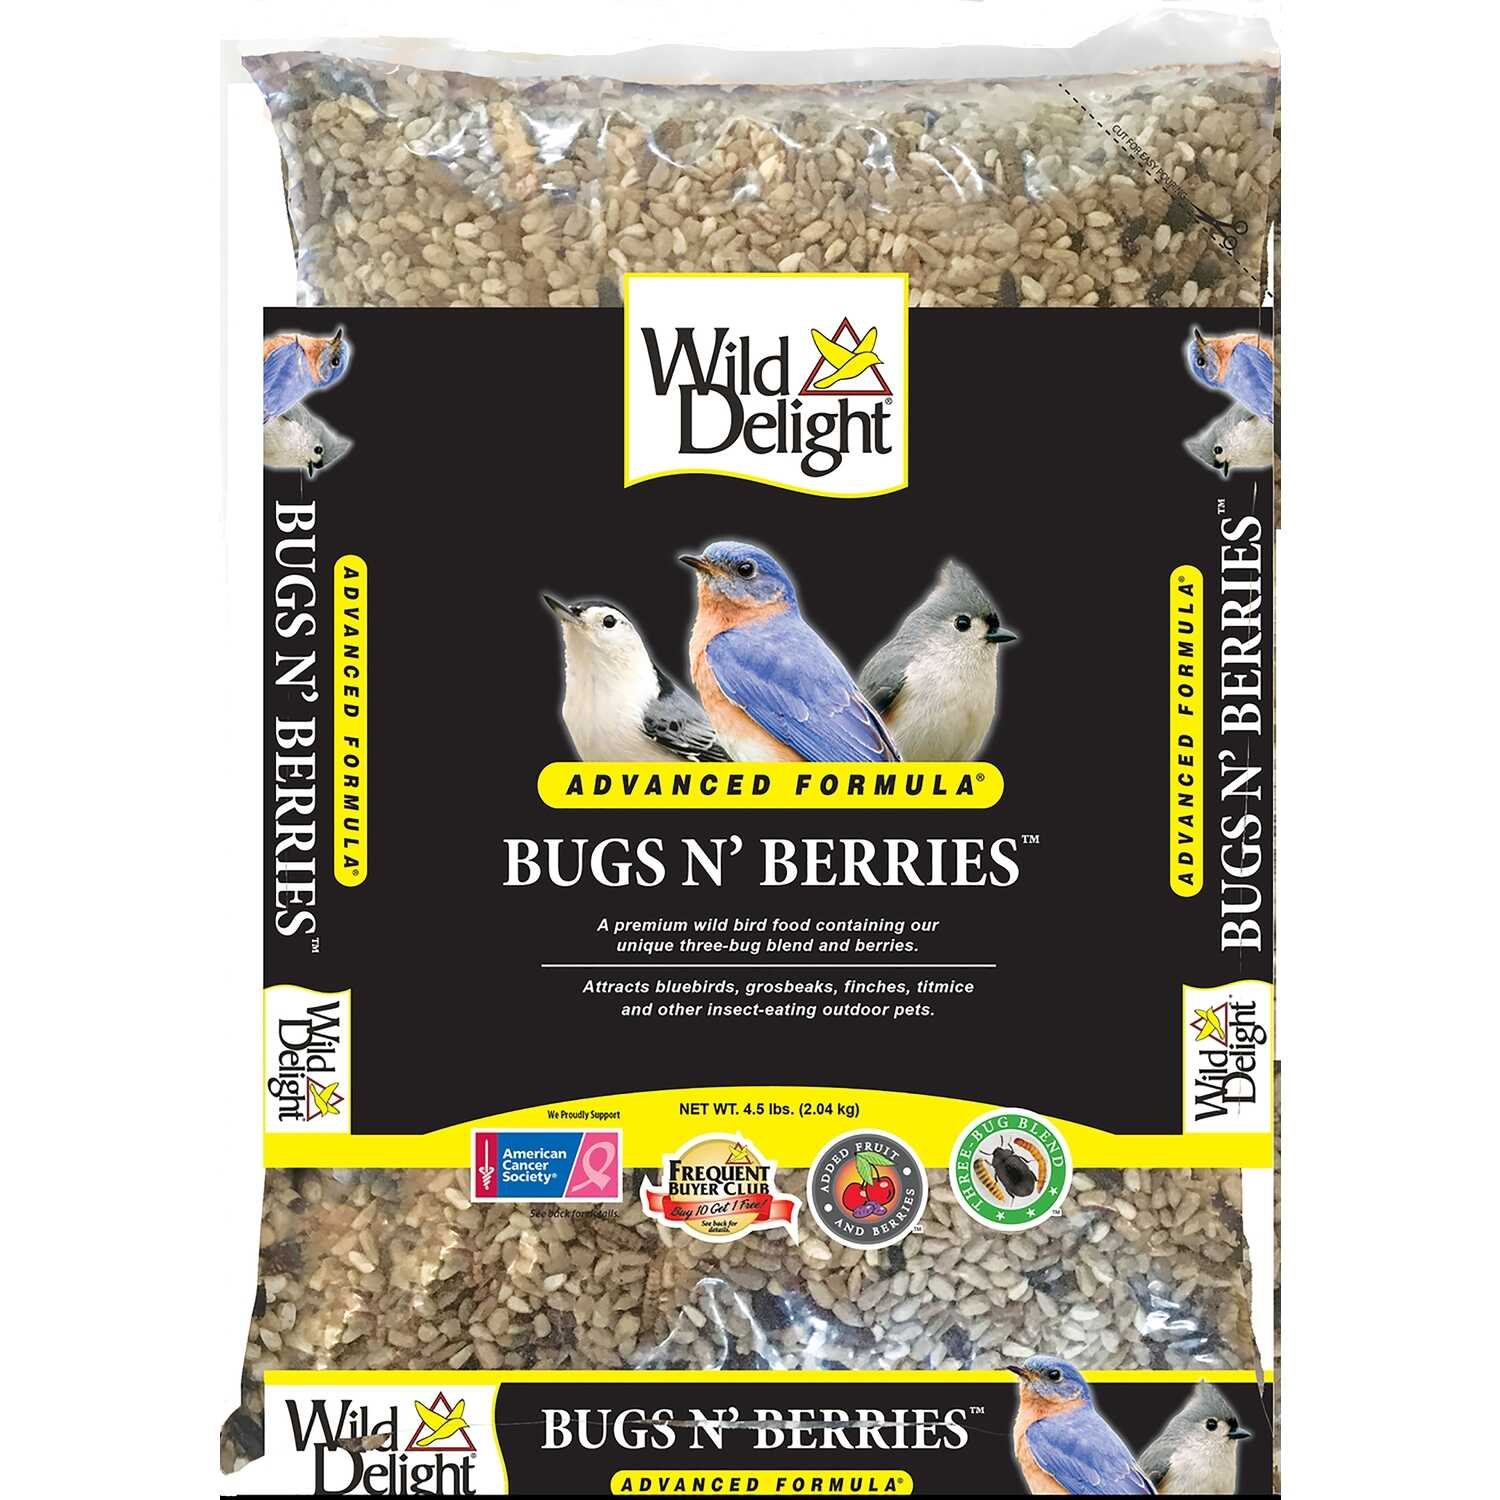 Wild Delight  Bugs N' Berries  Assorted Species  Wild Bird Food  Safflower Seeds  4.5 lb.